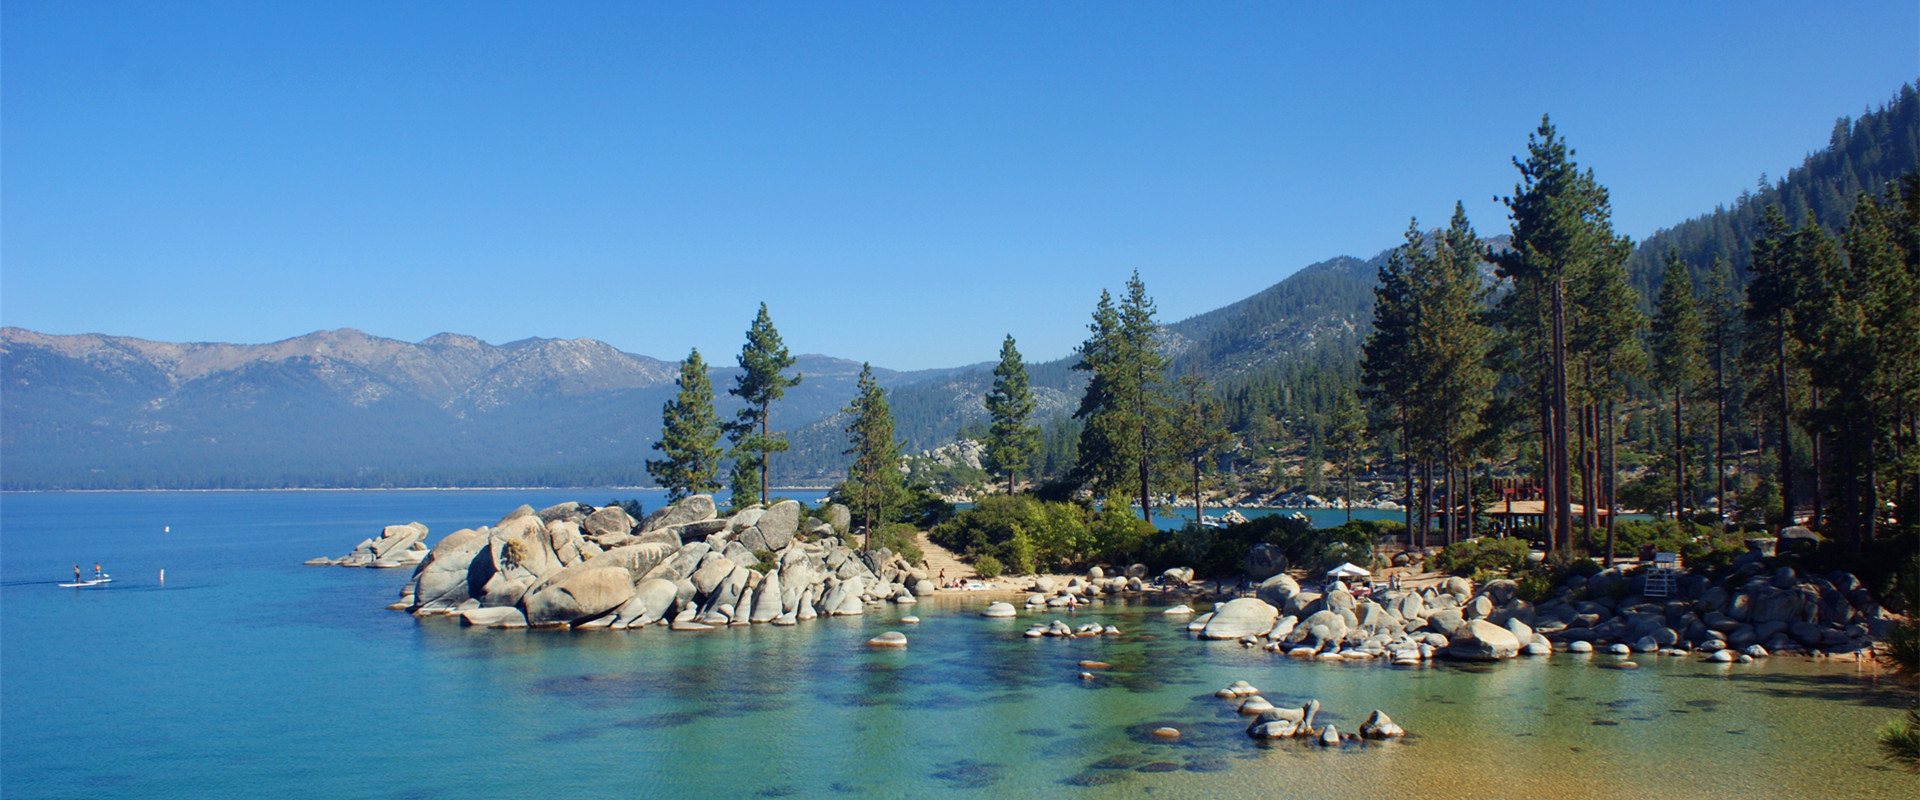 太浩湖 Lake Tahoe